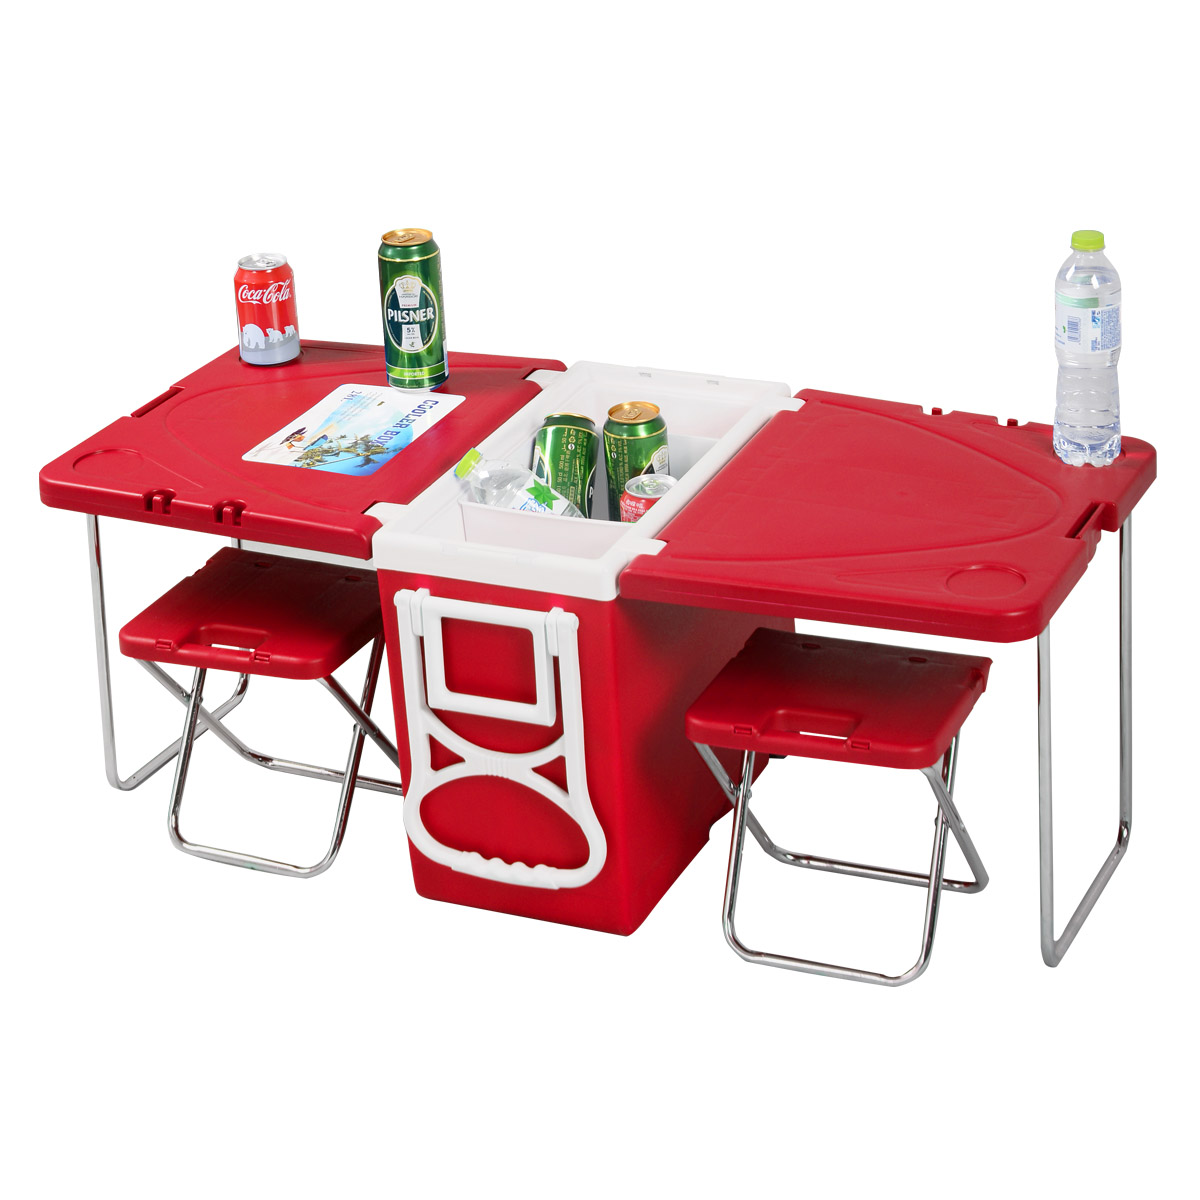 Chair Cooler Multi Functional Rolling Picnic Cooler 43 Table 432 Chairs